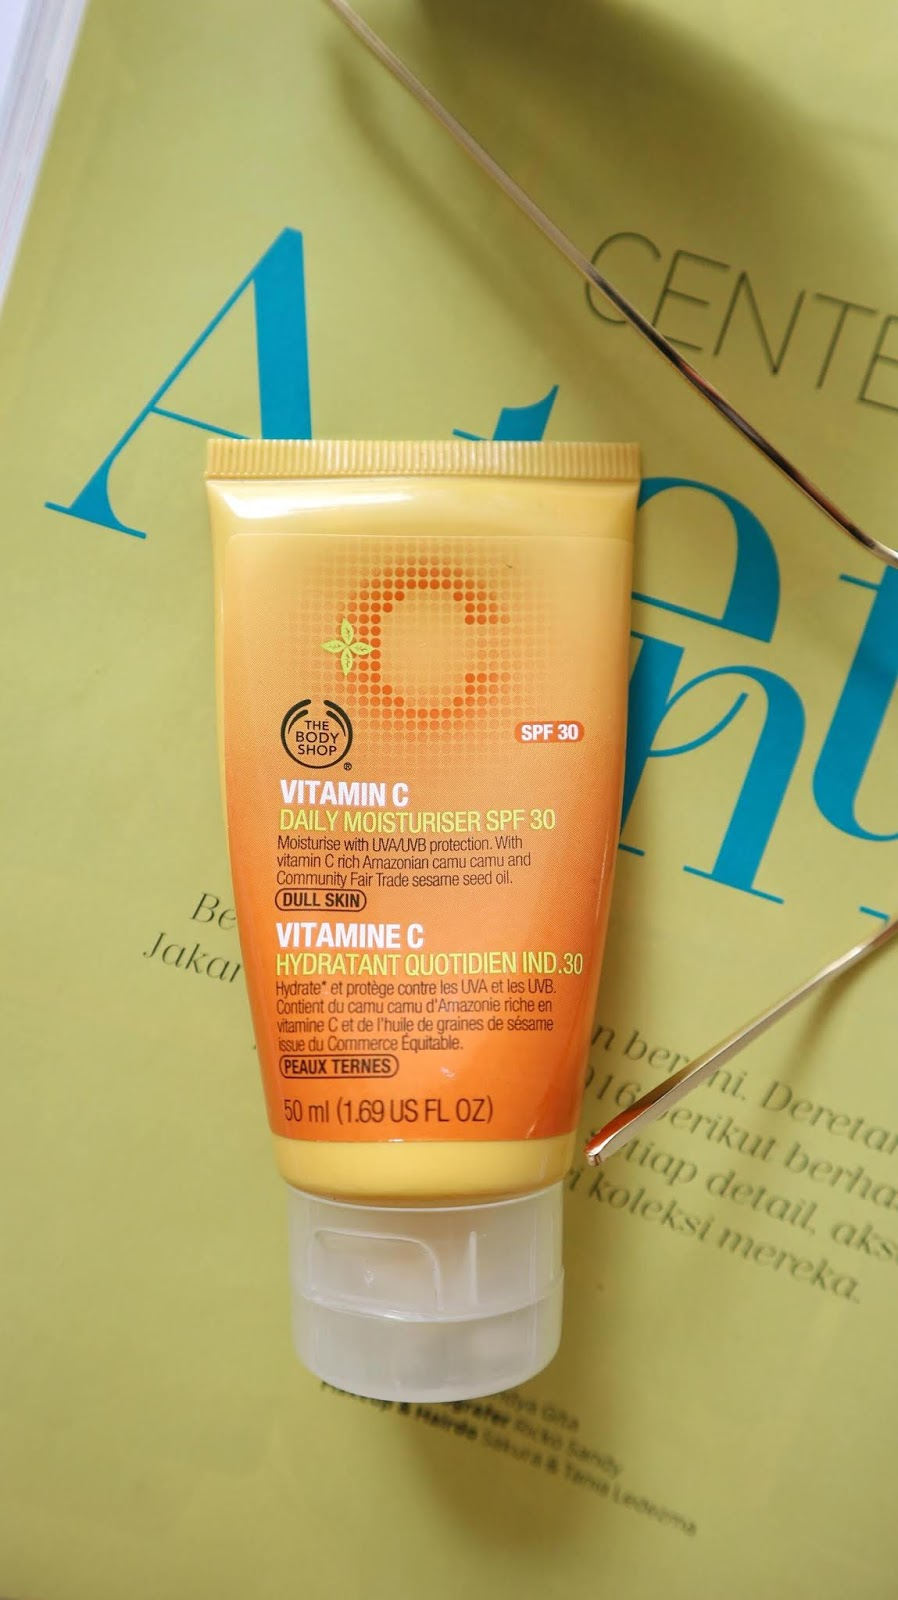 The Body Soap Vitamin C Daily Moisturizer SPF 30